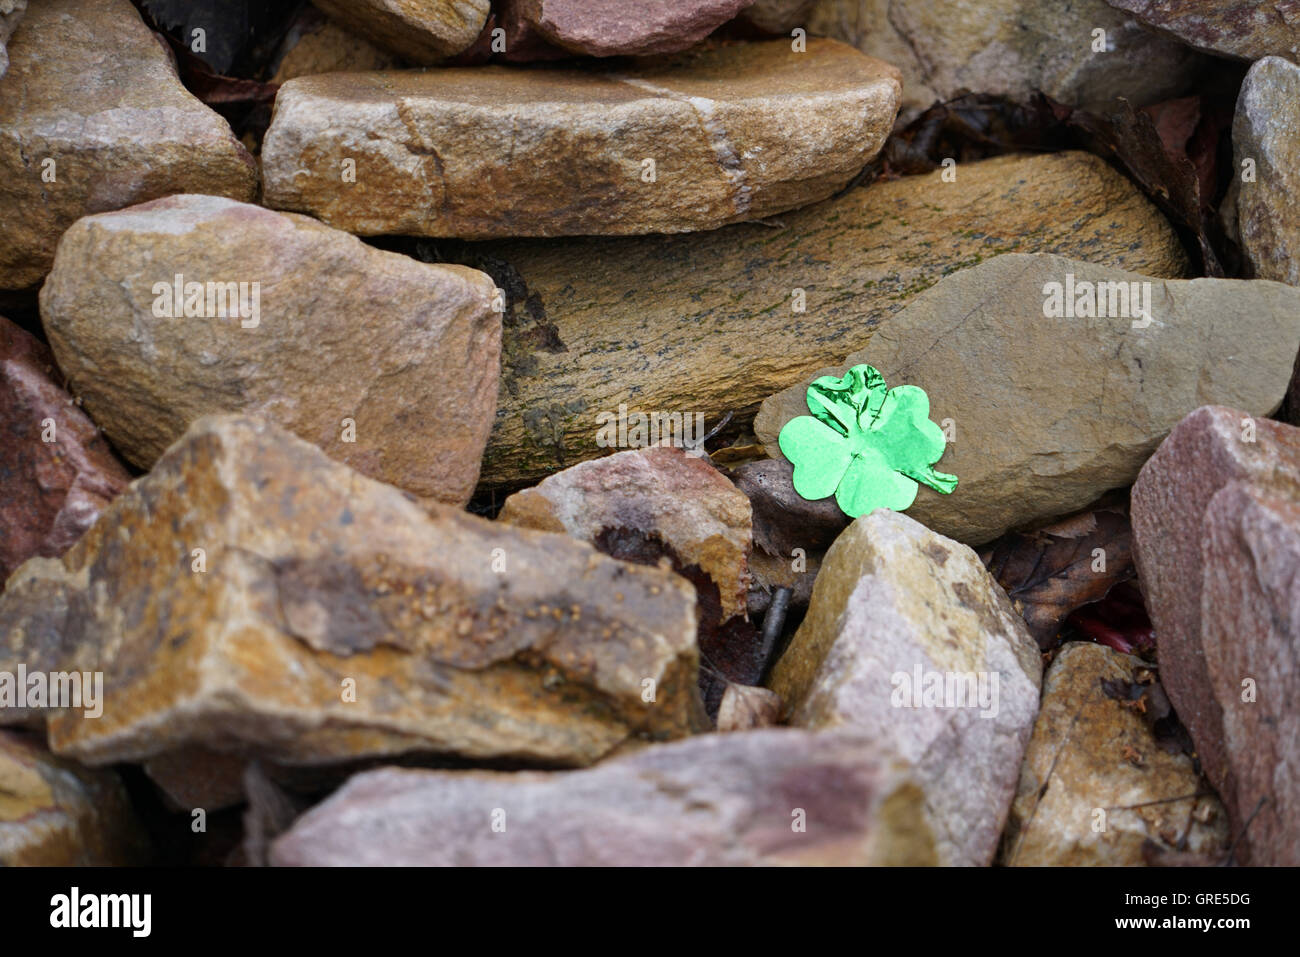 Glistening Four Leaf Clover On Stones - Stock Image